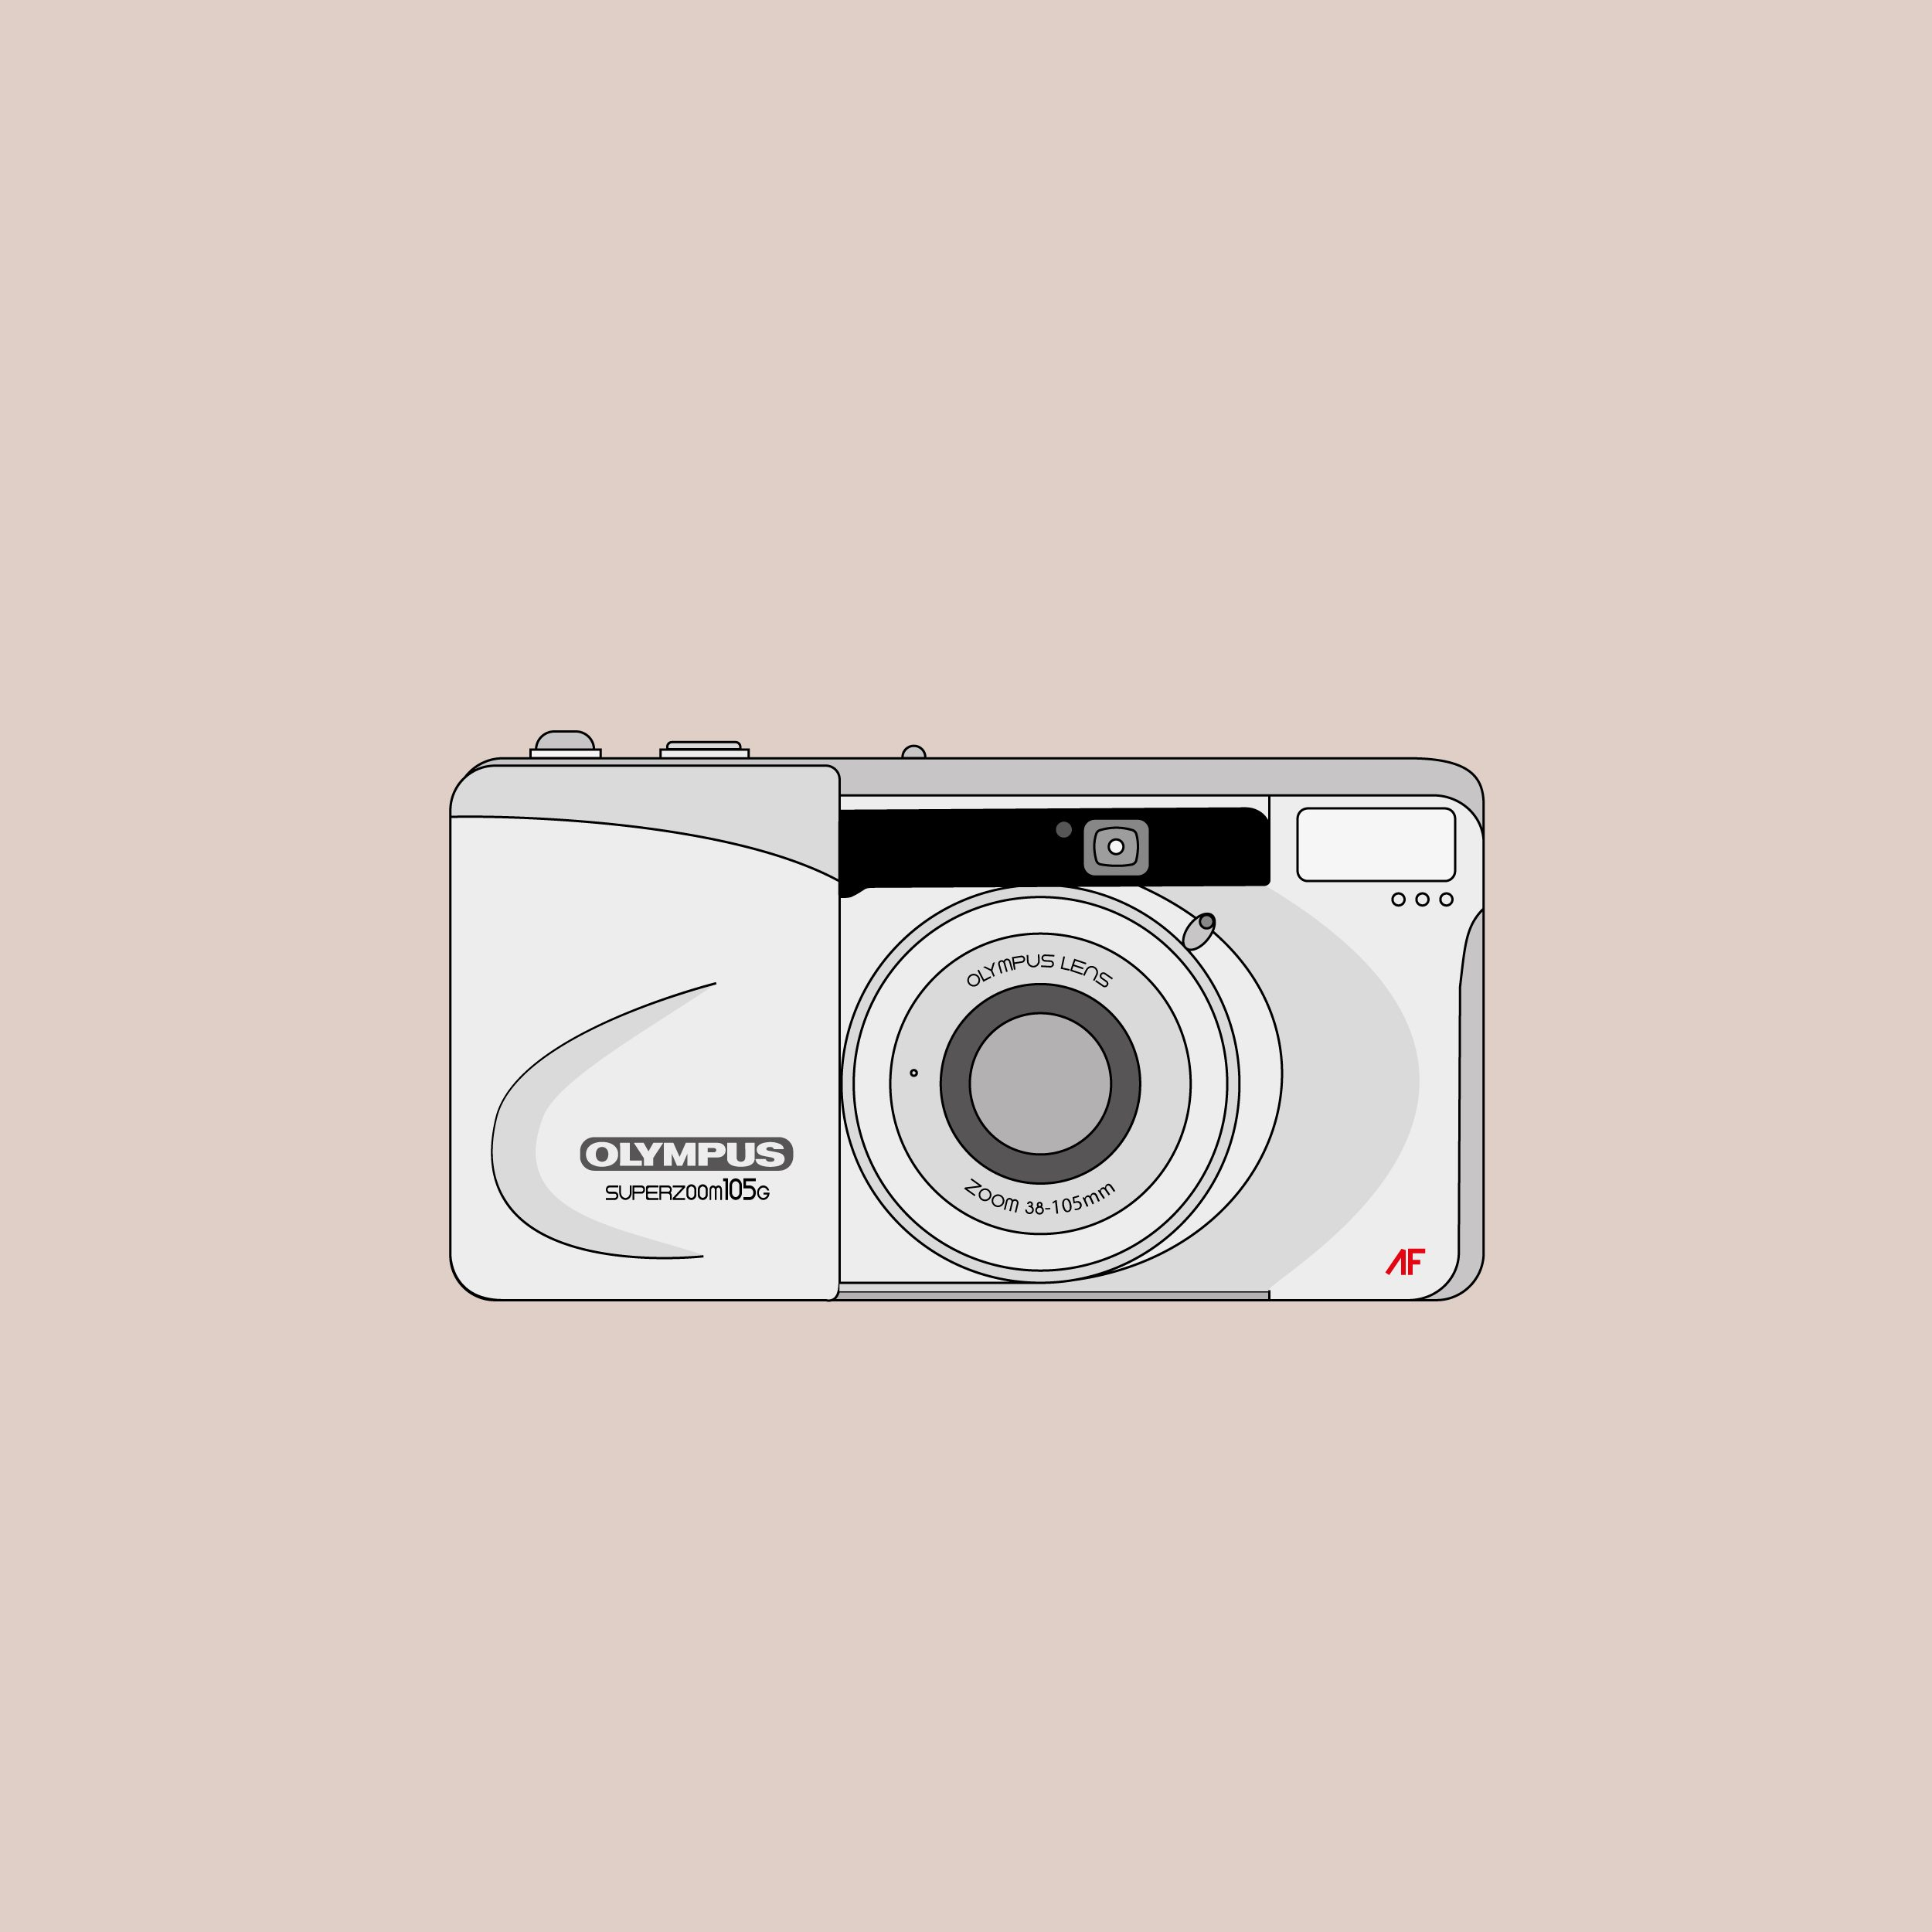 Olympus Superzoom 105G (Graphic: David Ortiz)